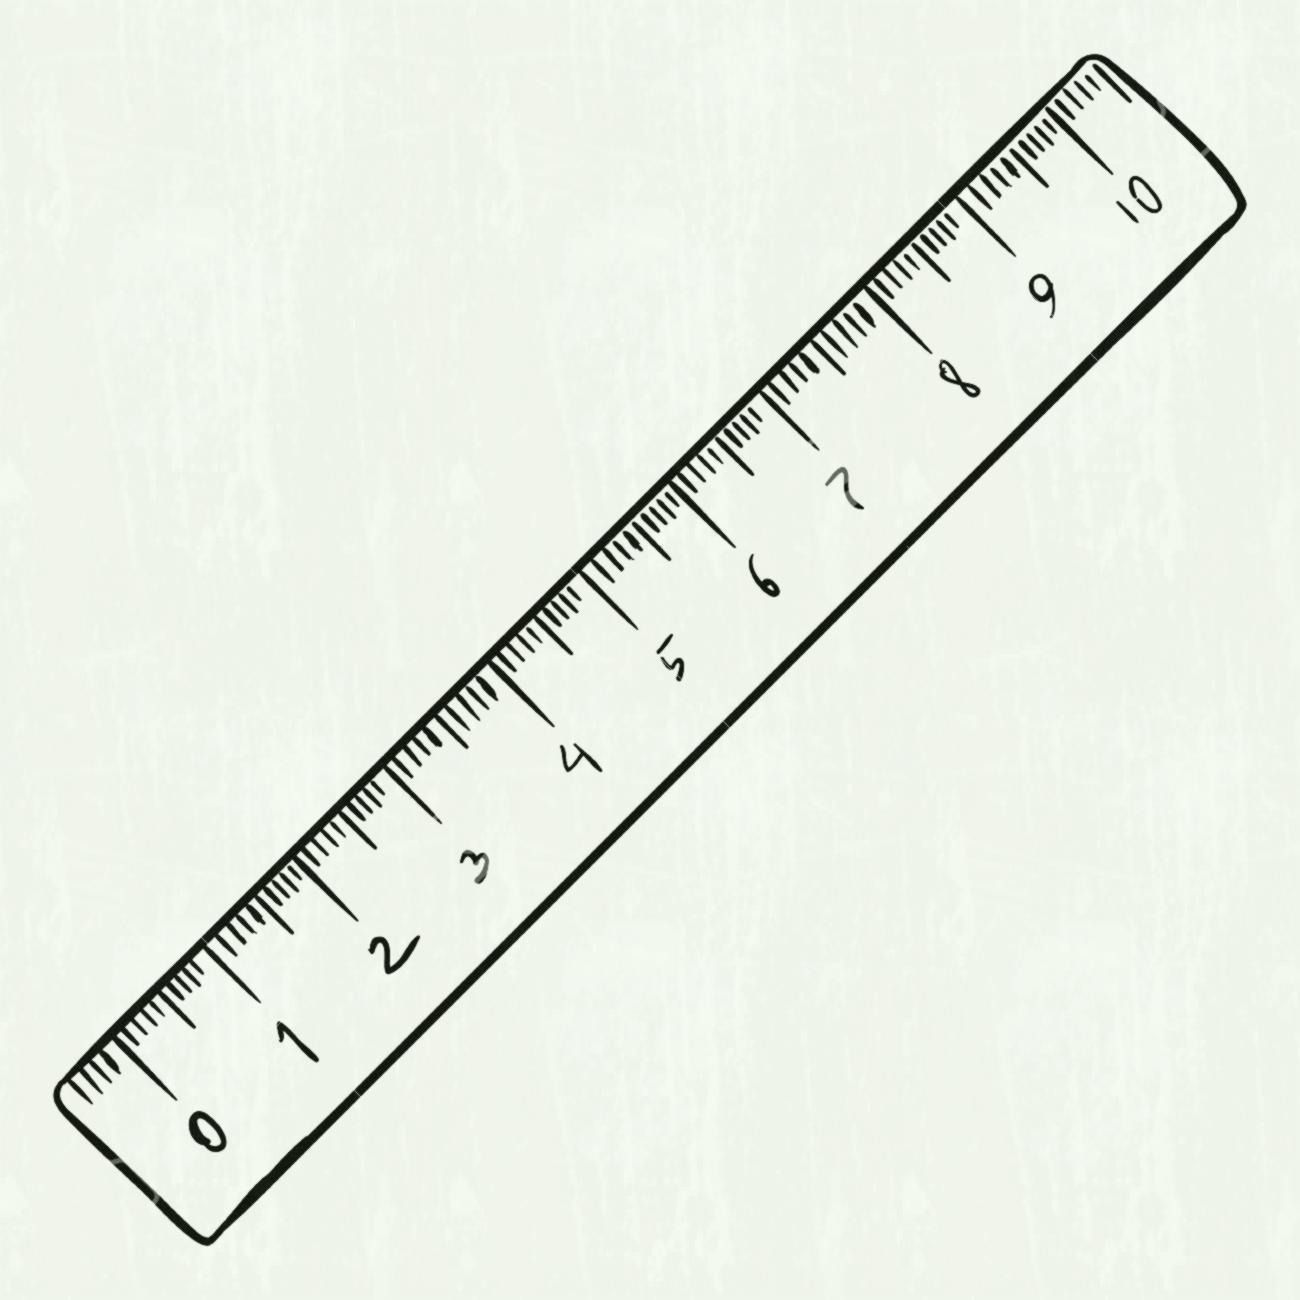 12 inch ruler clipart black and white.